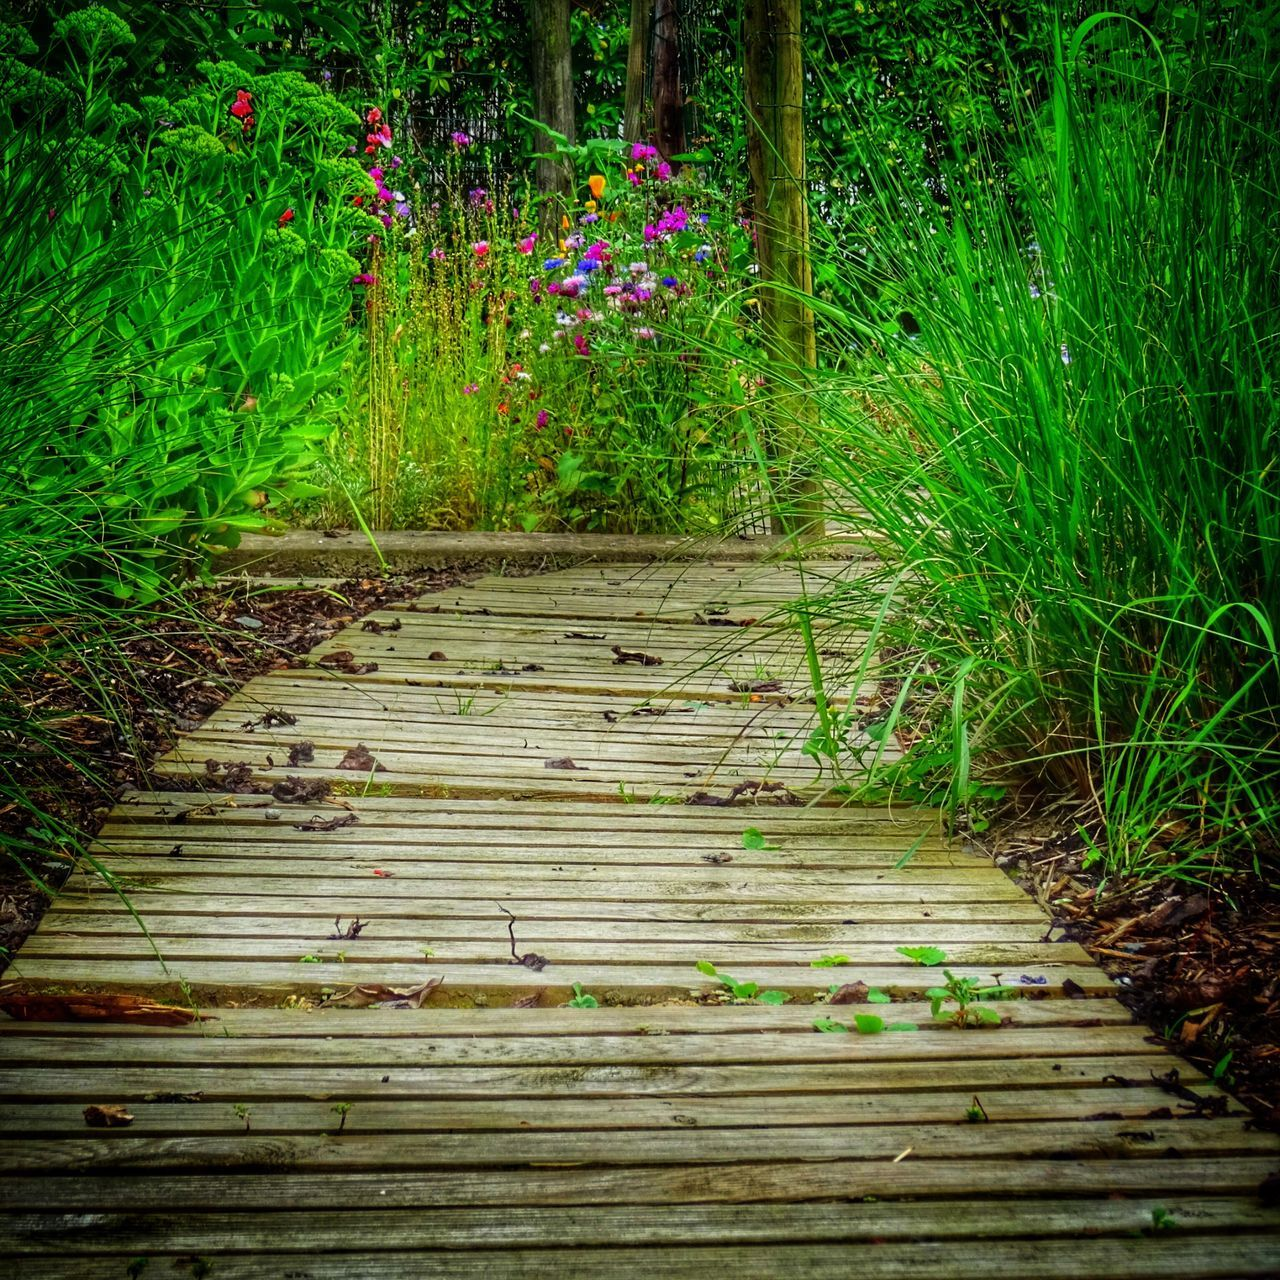 nature, growth, grass, wood - material, plant, no people, outdoors, tranquility, beauty in nature, flower, day